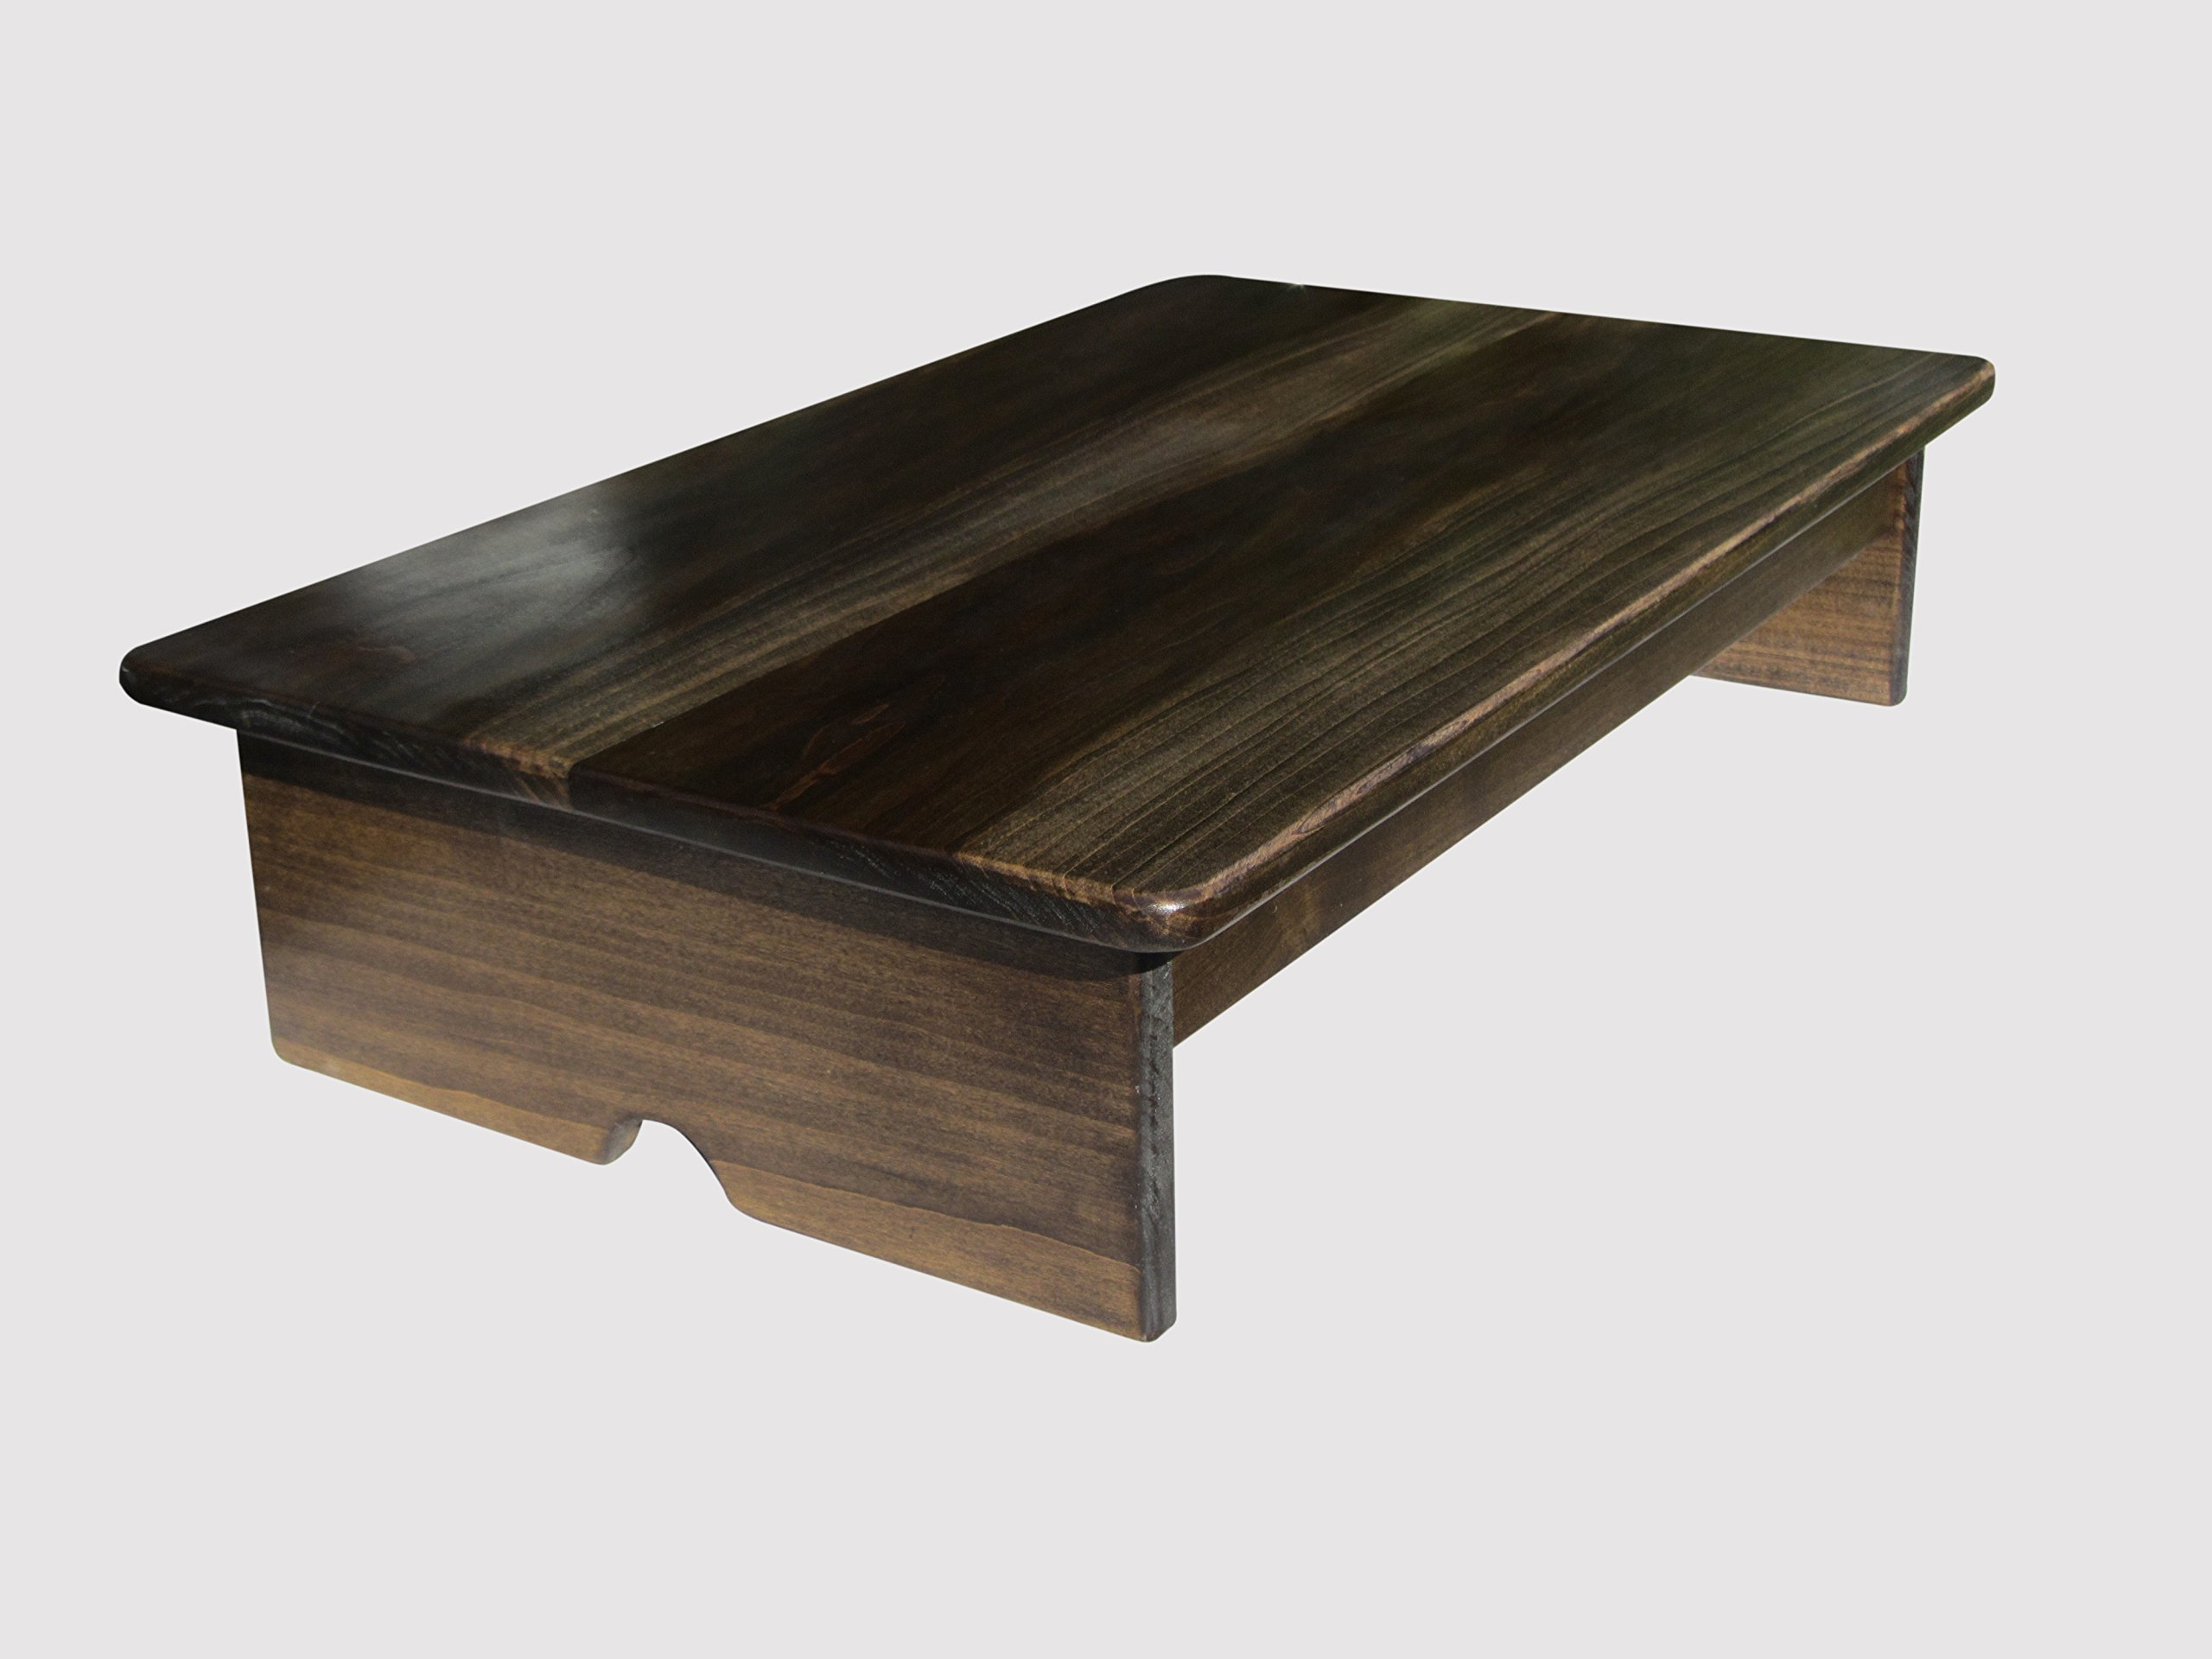 Bedside Platform Foot Stool 7'' Tall Walnut Stain (Made in the USA) by KR Ideas